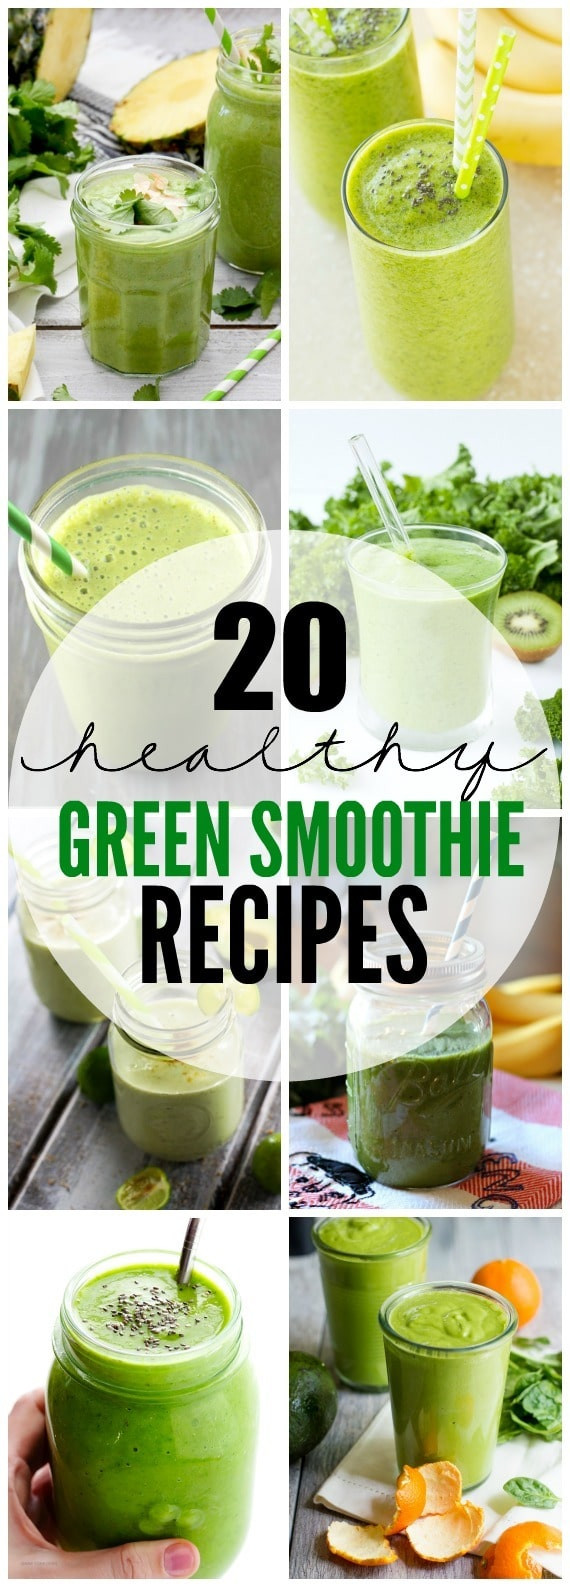 Easy And Healthy Smoothie Recipes  20 Healthy Green Smoothie Recipes Yummy Healthy Easy